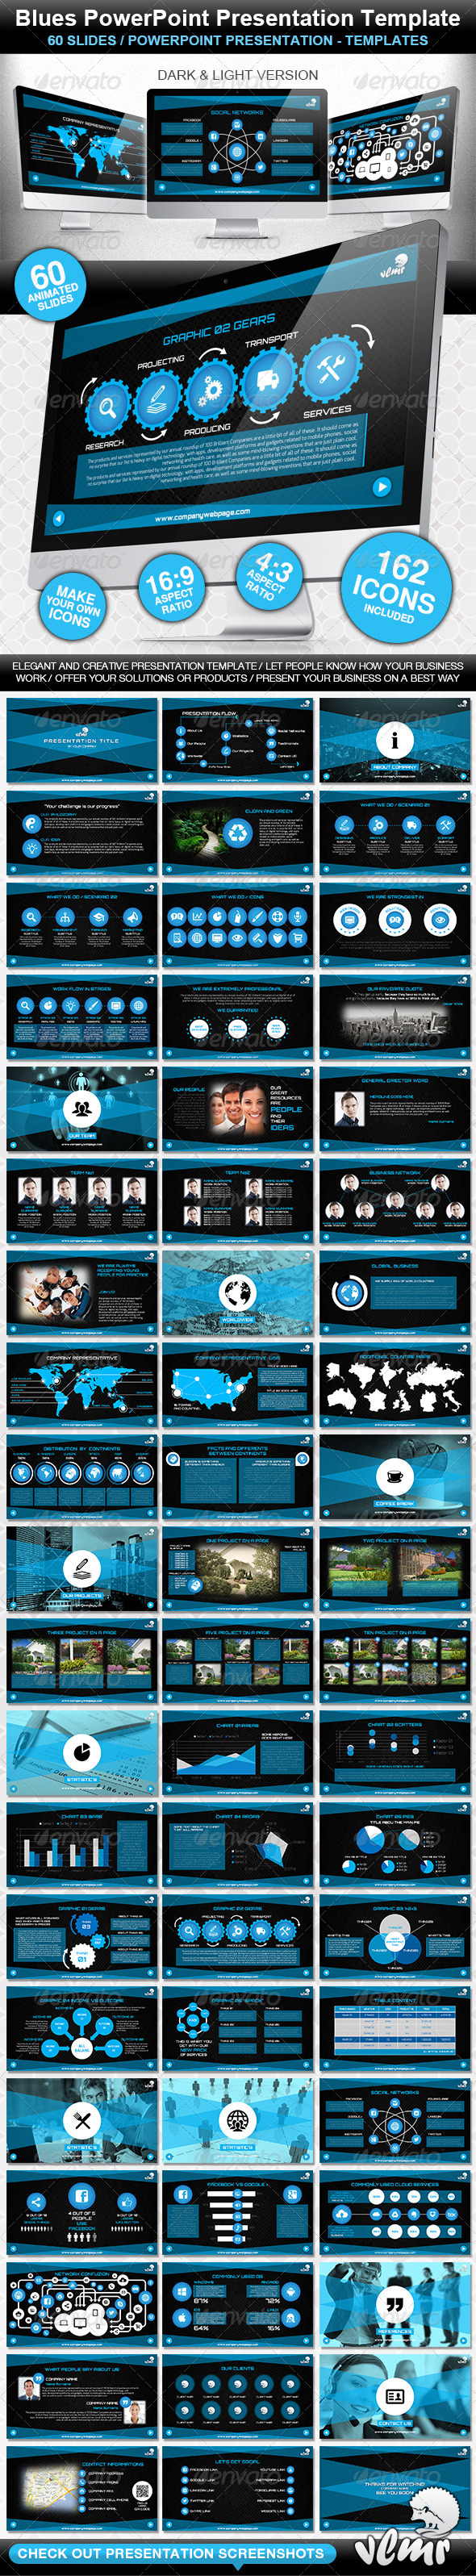 GraphicRiver Blues PowerPoint Presentation Template 4861776